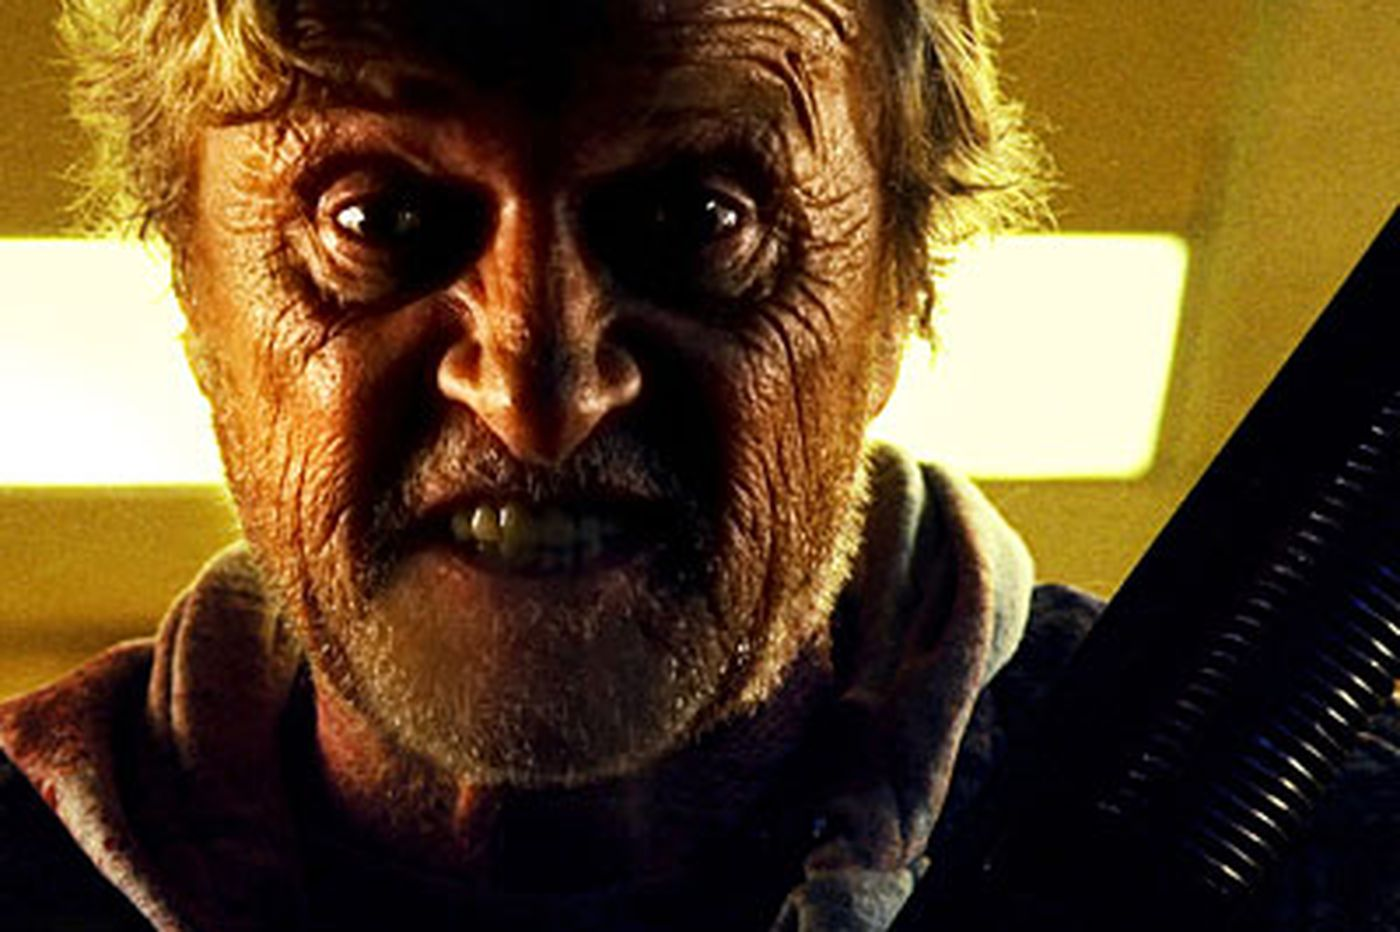 When a hobo enters a tainted town & goes vigilante, heads roll